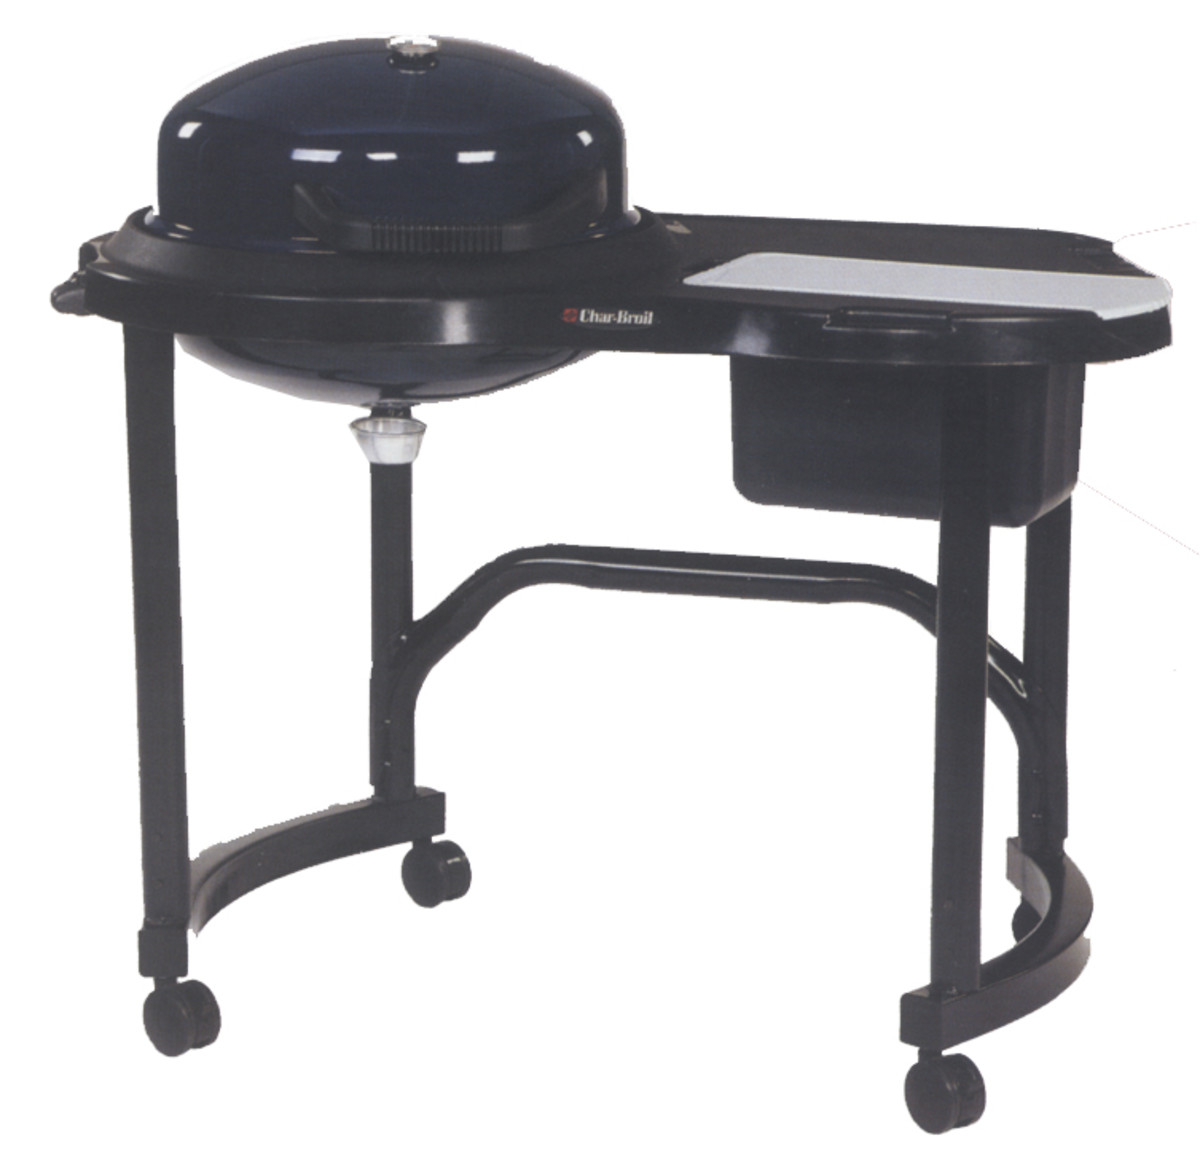 Char-broil electric patio bistro bbq with 300 sq. in. cooking surface and 1750 watt heating.